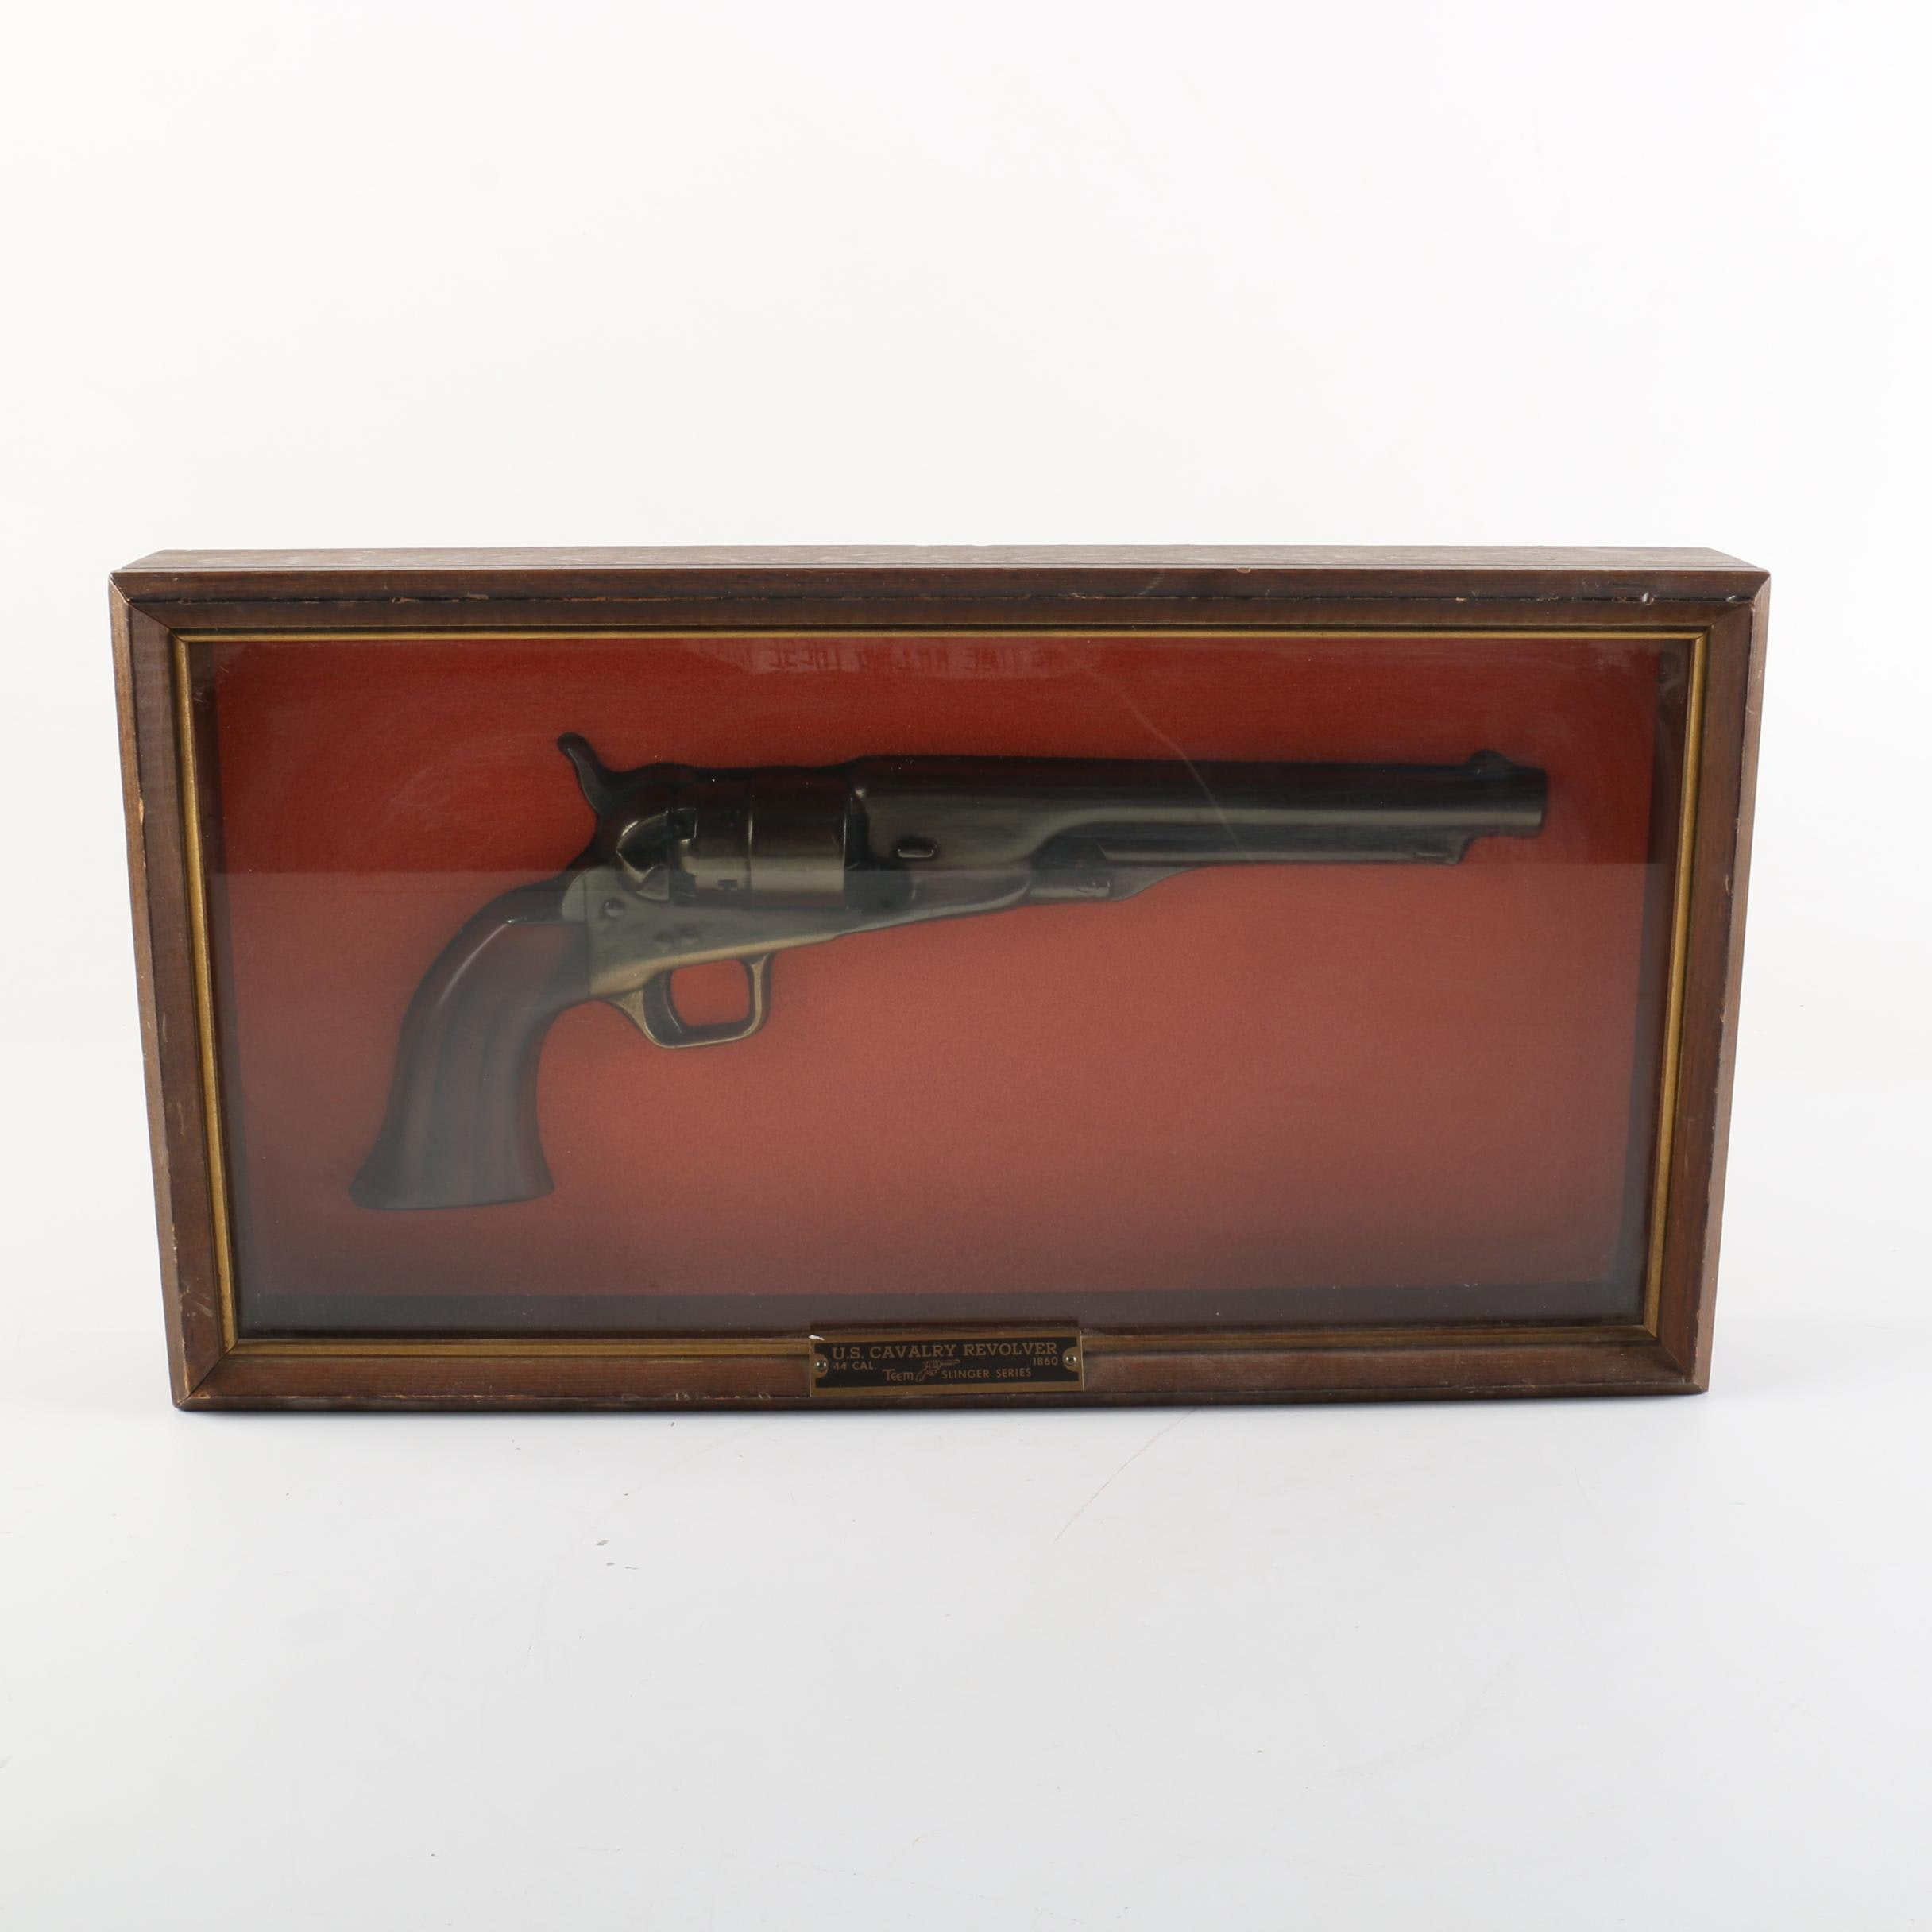 Replica US Cavalry Revolver in Display Case from Teem Slinger Series